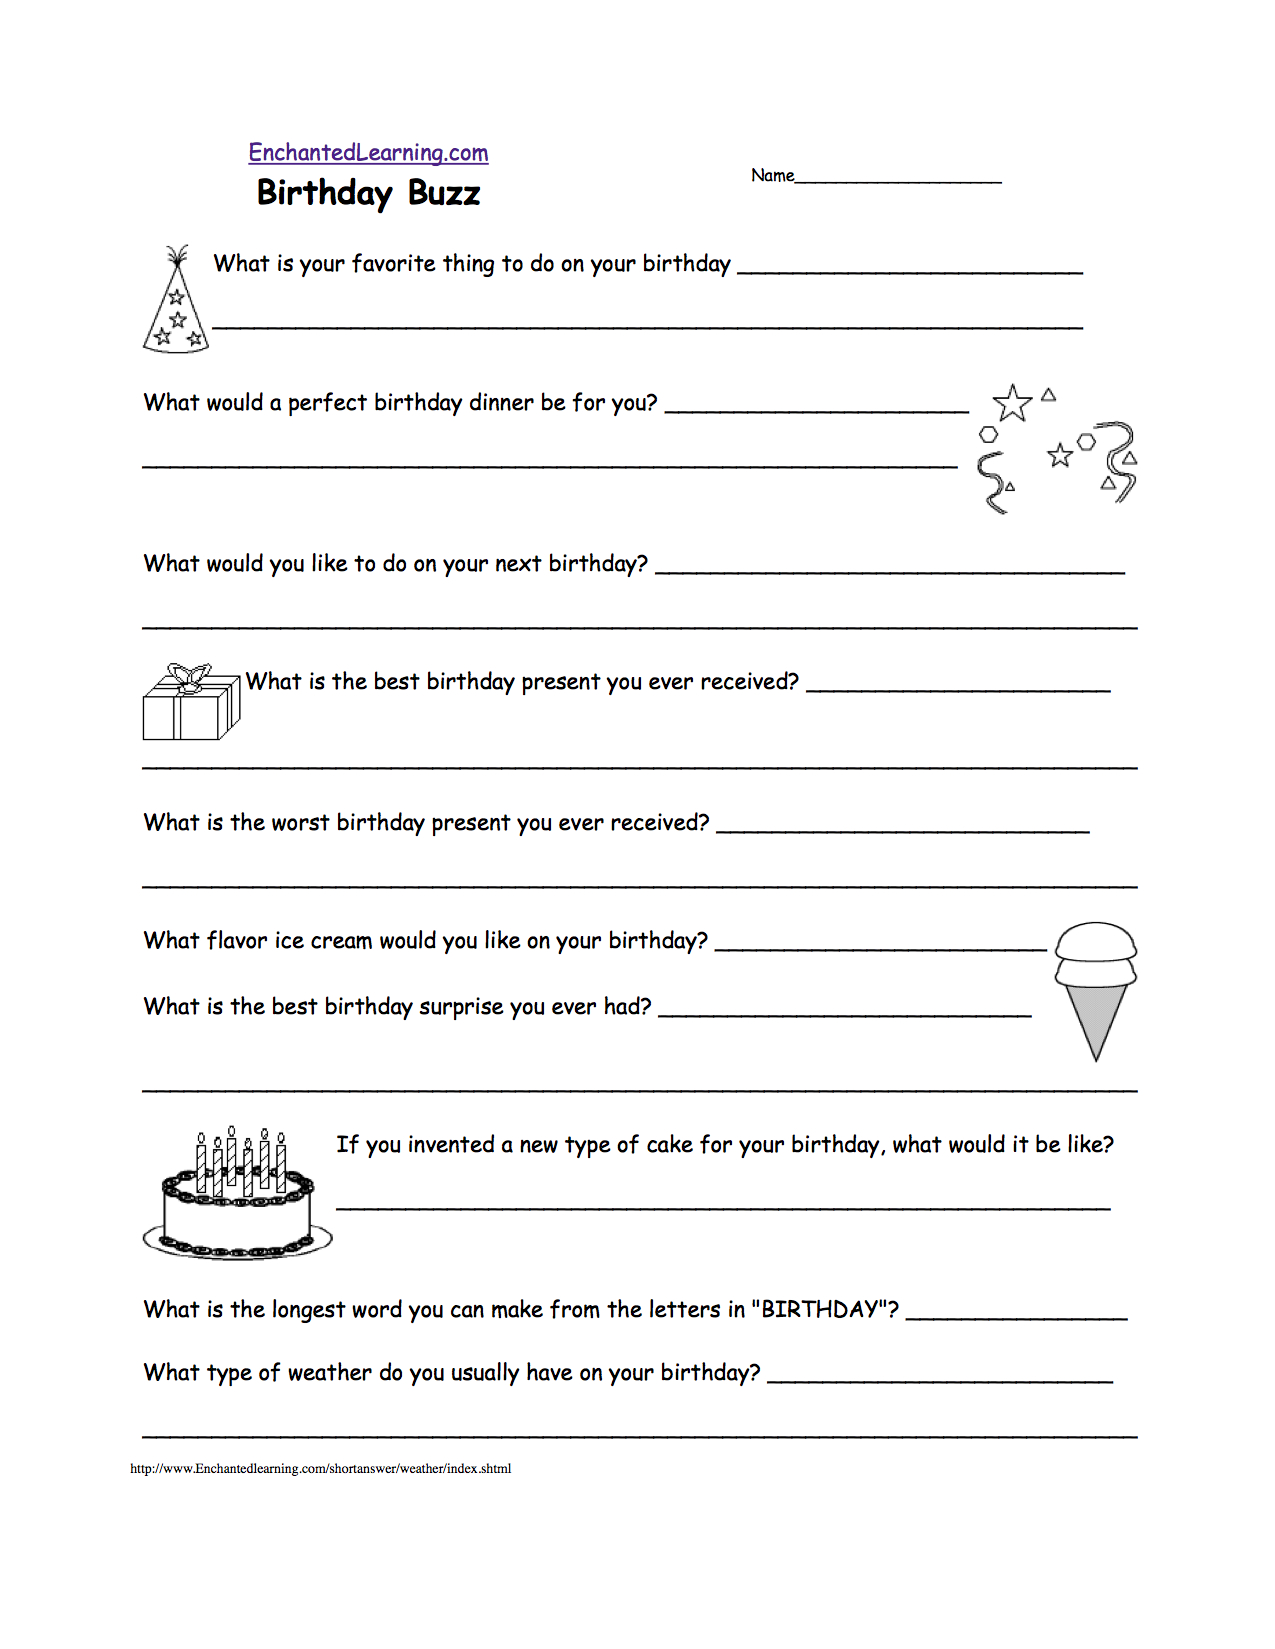 Short Answer Quizzes - Printable - Enchantedlearning - Free Printable Black History Trivia Questions And Answers